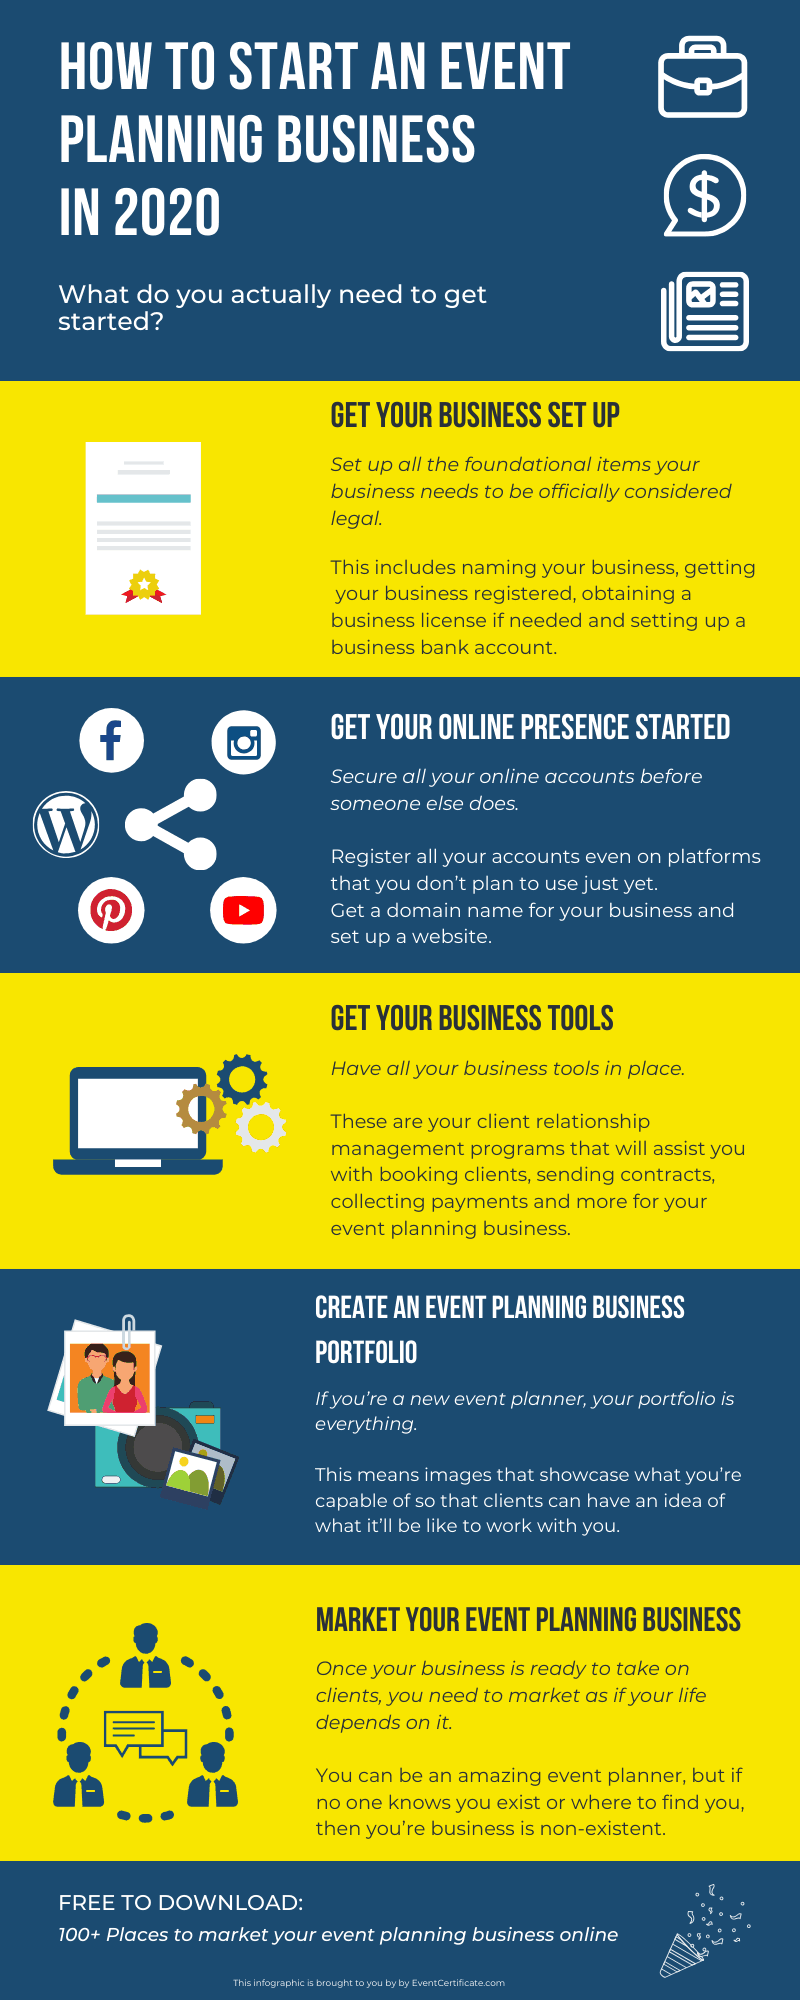 starting an event planning business in 2020 infographic